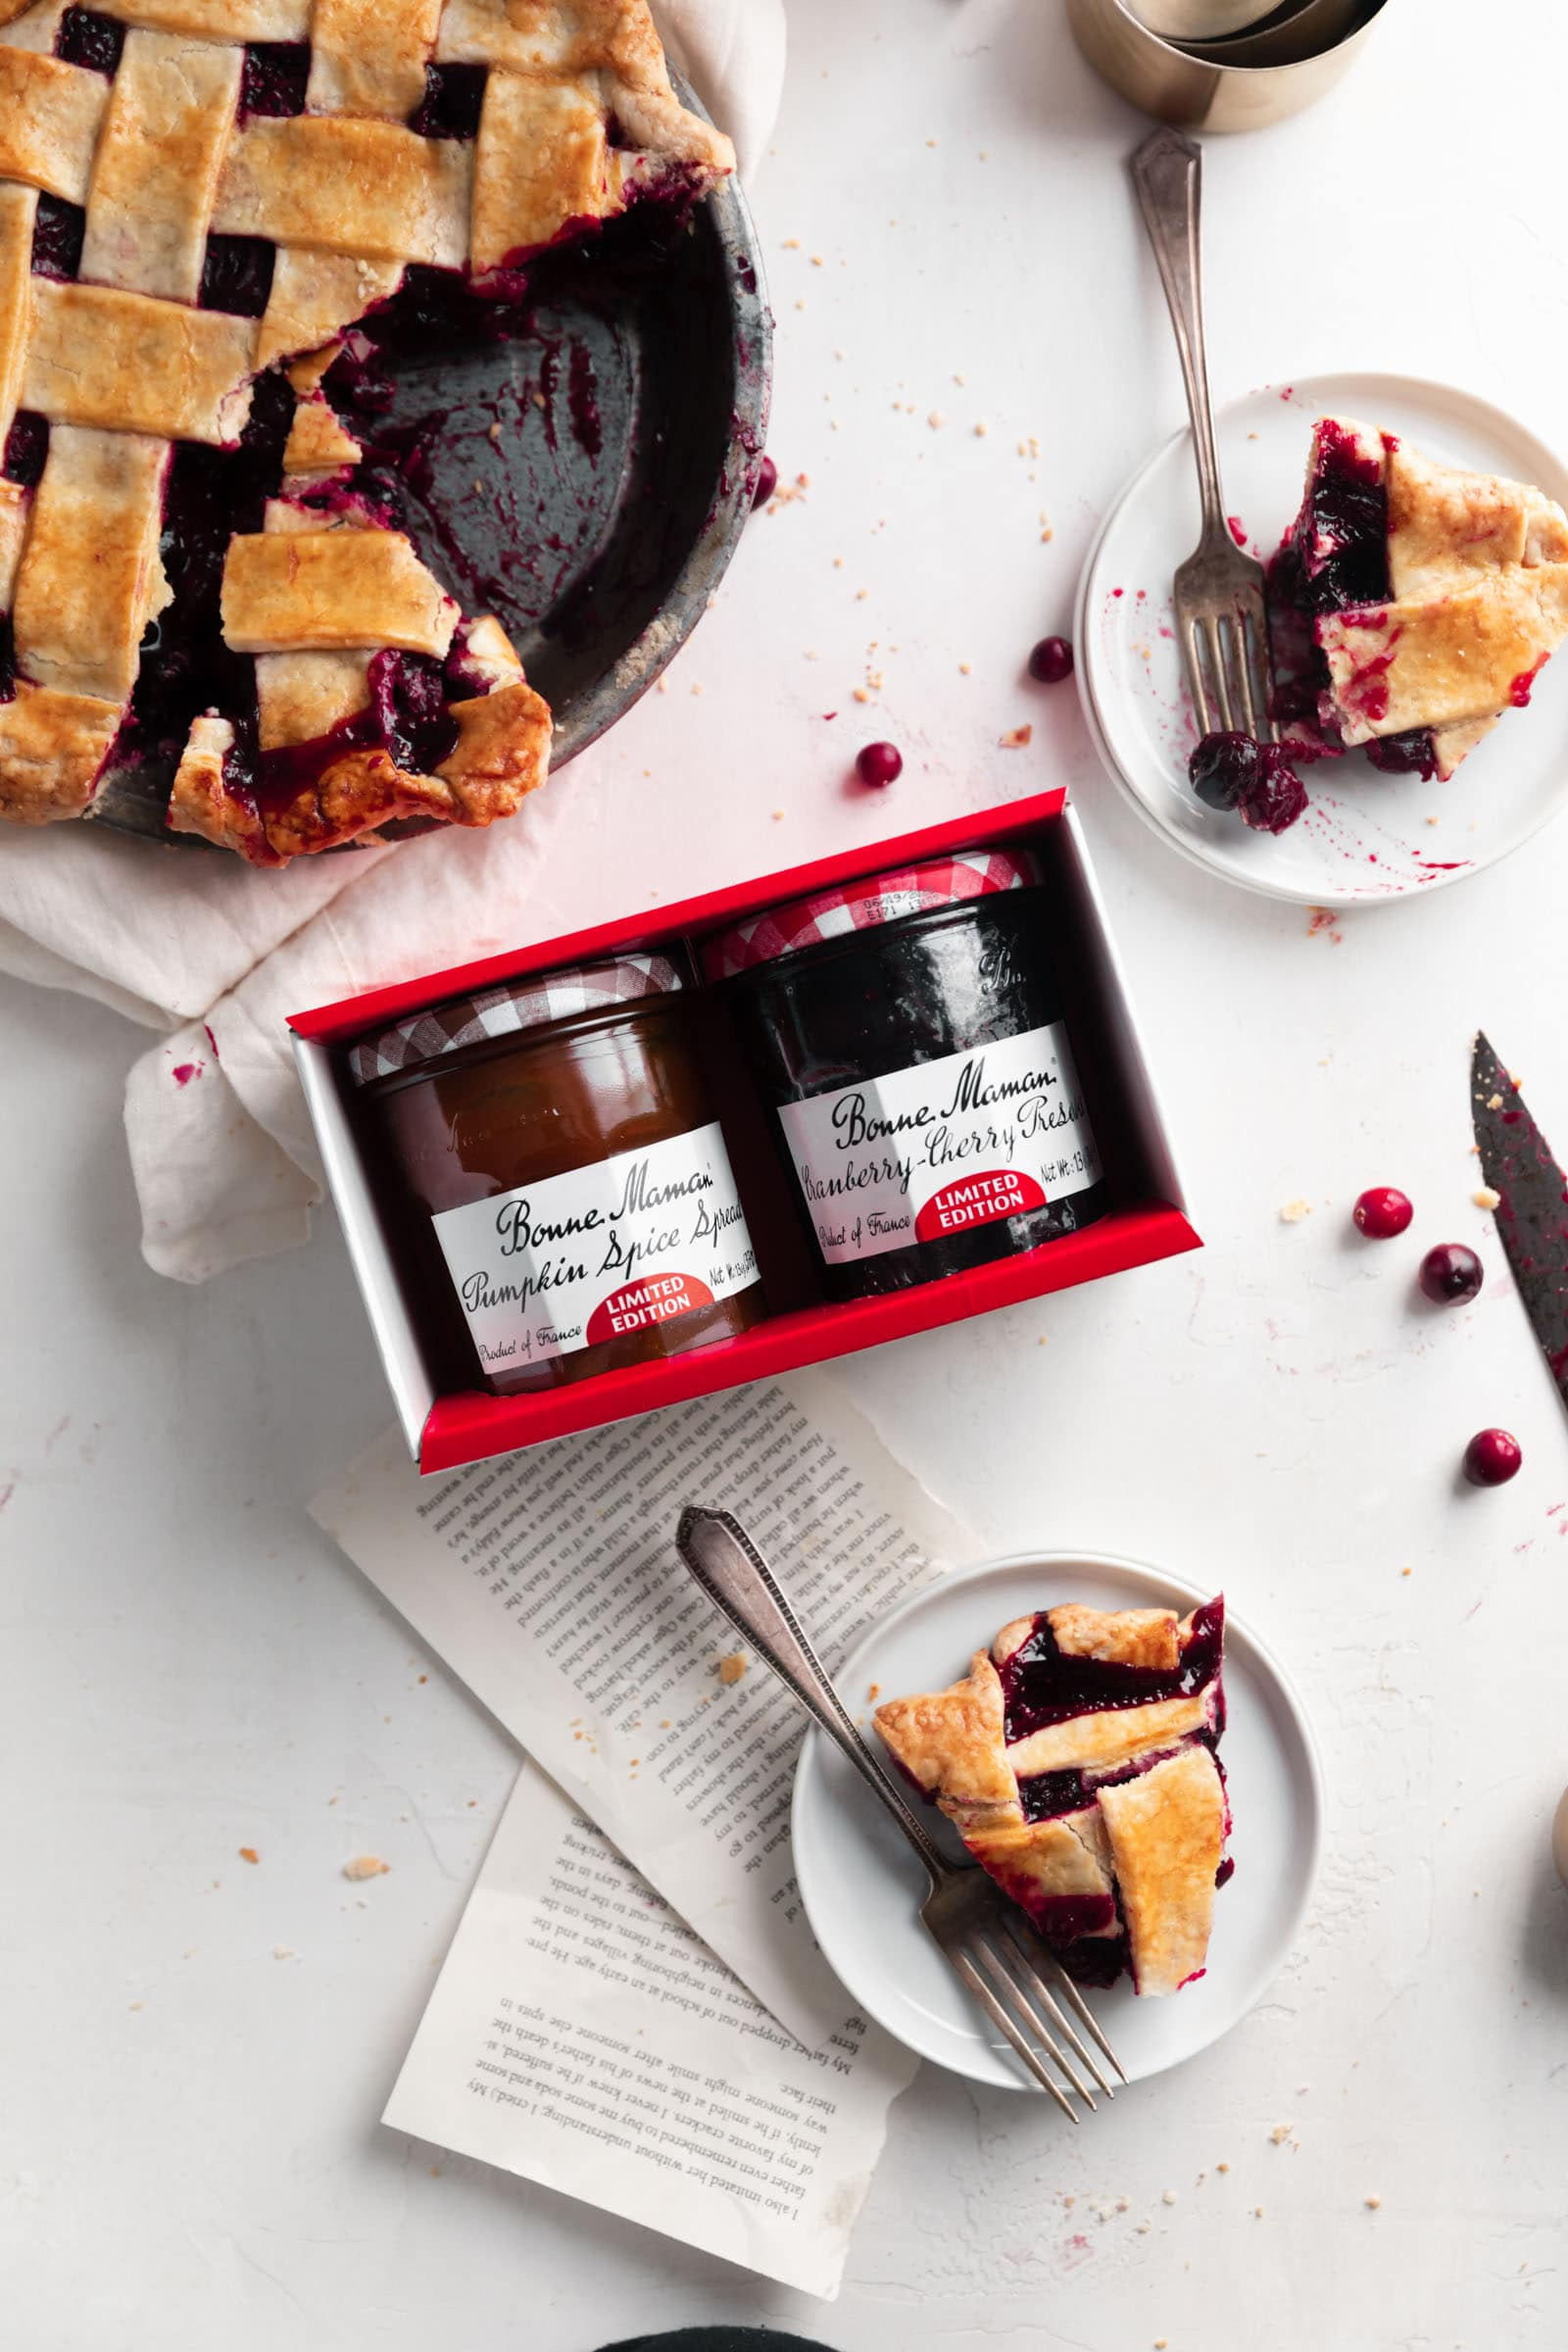 cranberry cherry preserves and pumpkin spice spread